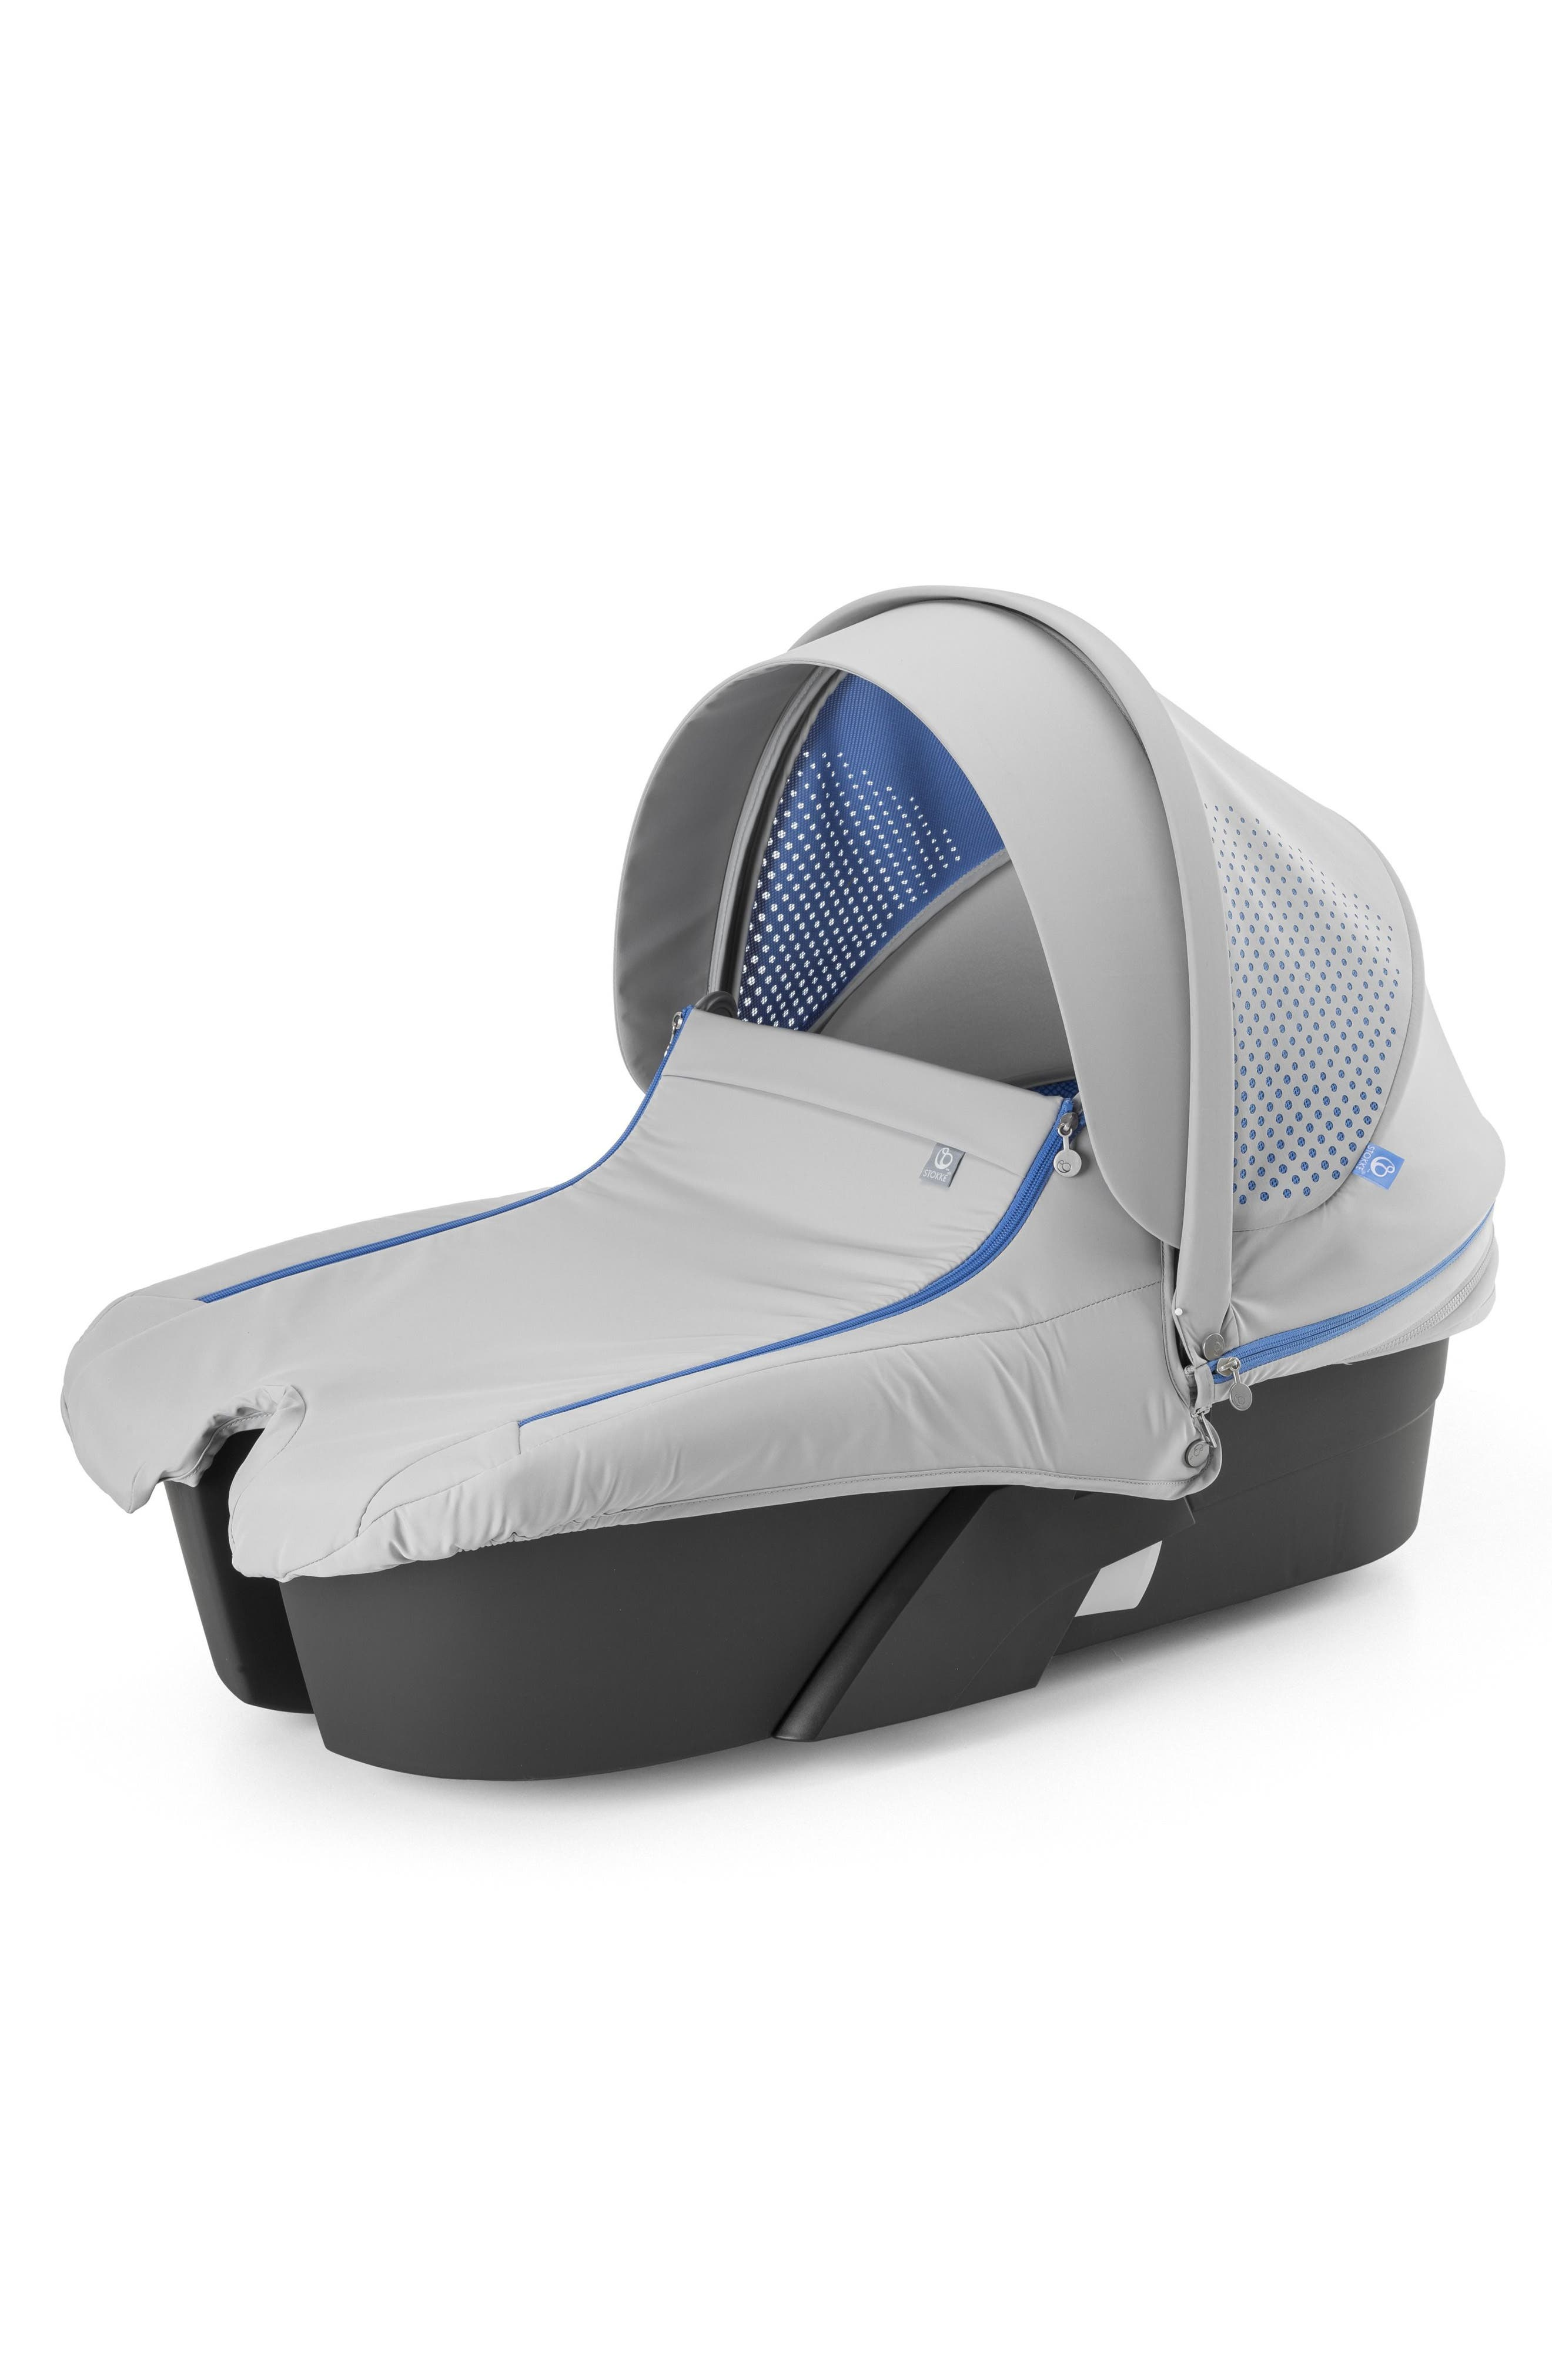 Xplory<sup>®</sup> Athleisure Stroller Carry Cot Attachment,                         Main,                         color, 410